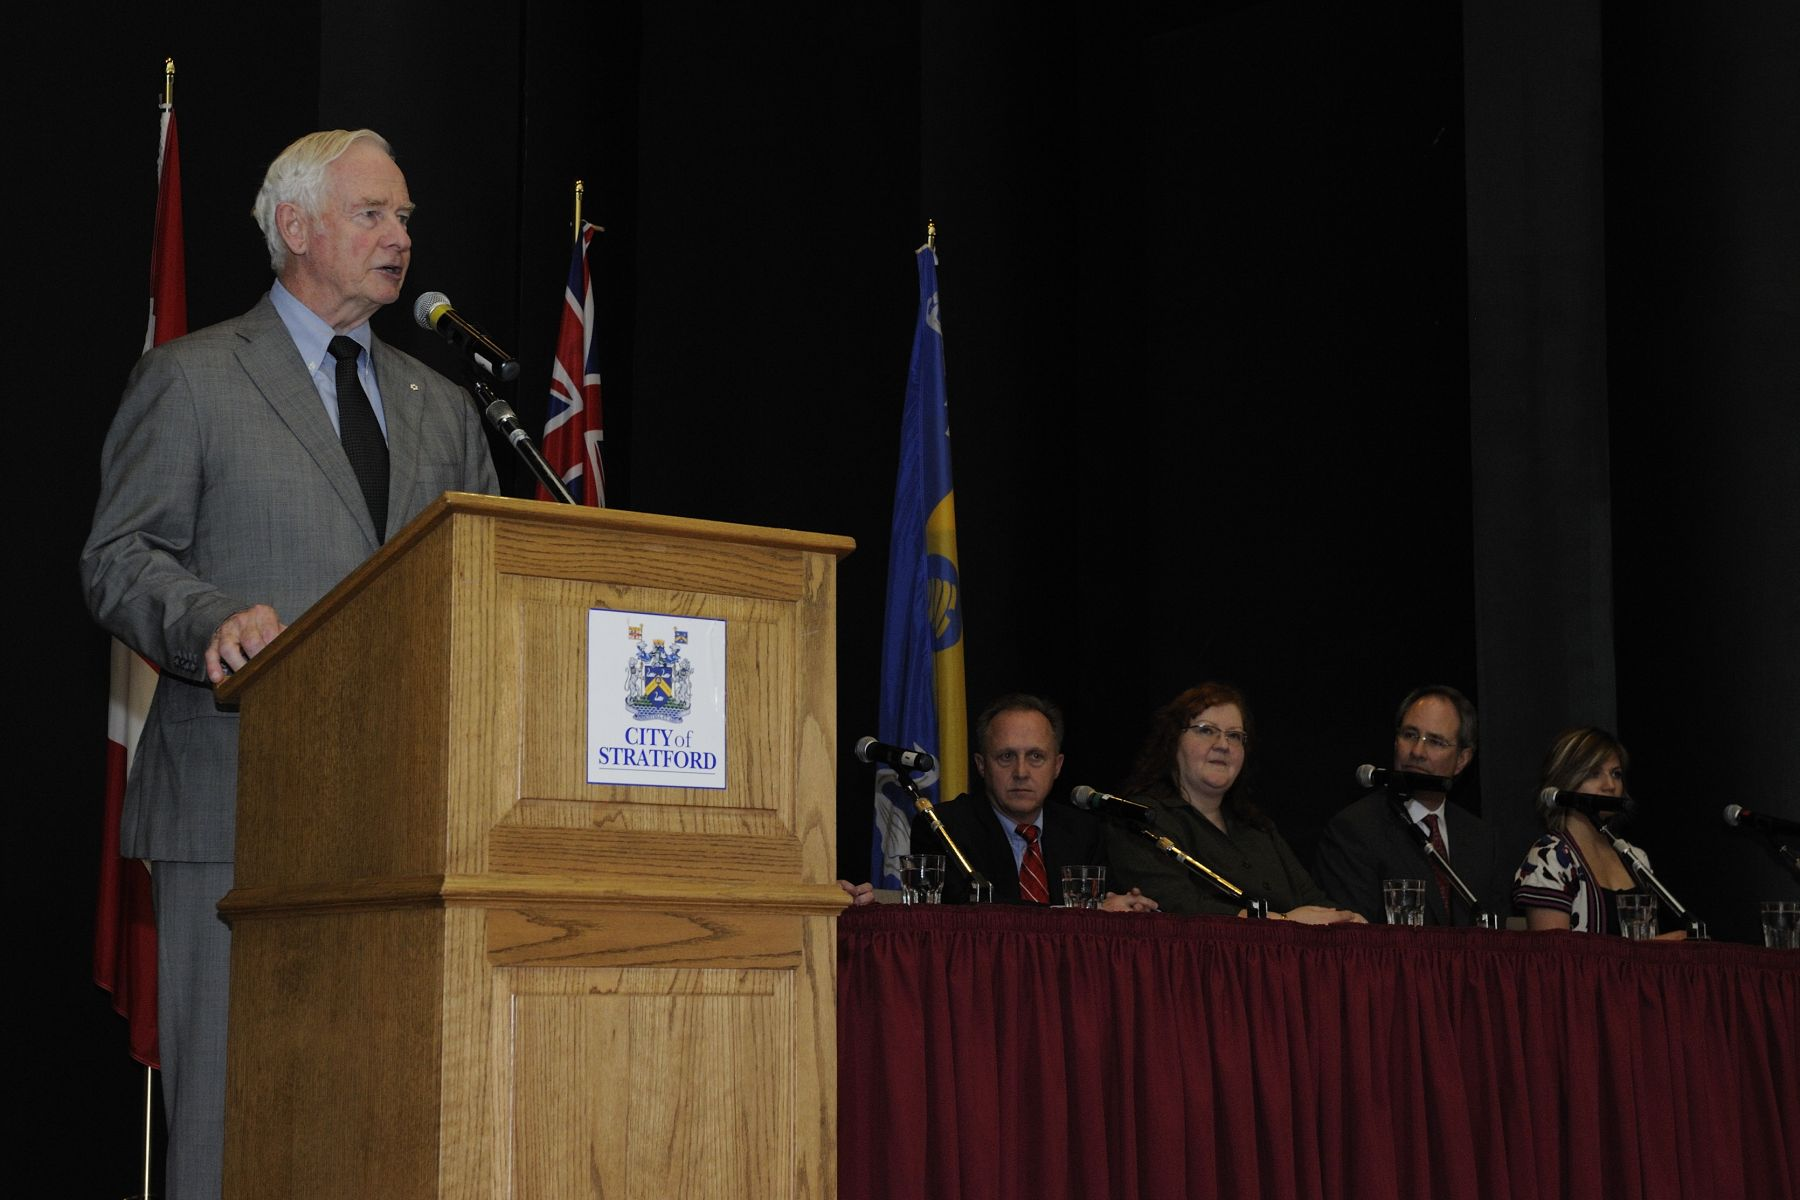 """As governor general, I am committed to doing all I can to shape Canada into a smarter, more caring nation. A nation that helps families and children succeed. A nation that strengthens learning opportunities and fosters innovation. A nation that values volunteerism and philanthropy. A nation that dares to dream about a better future for all Canadians today, and the next generation tomorrow,"" said the Governor General."